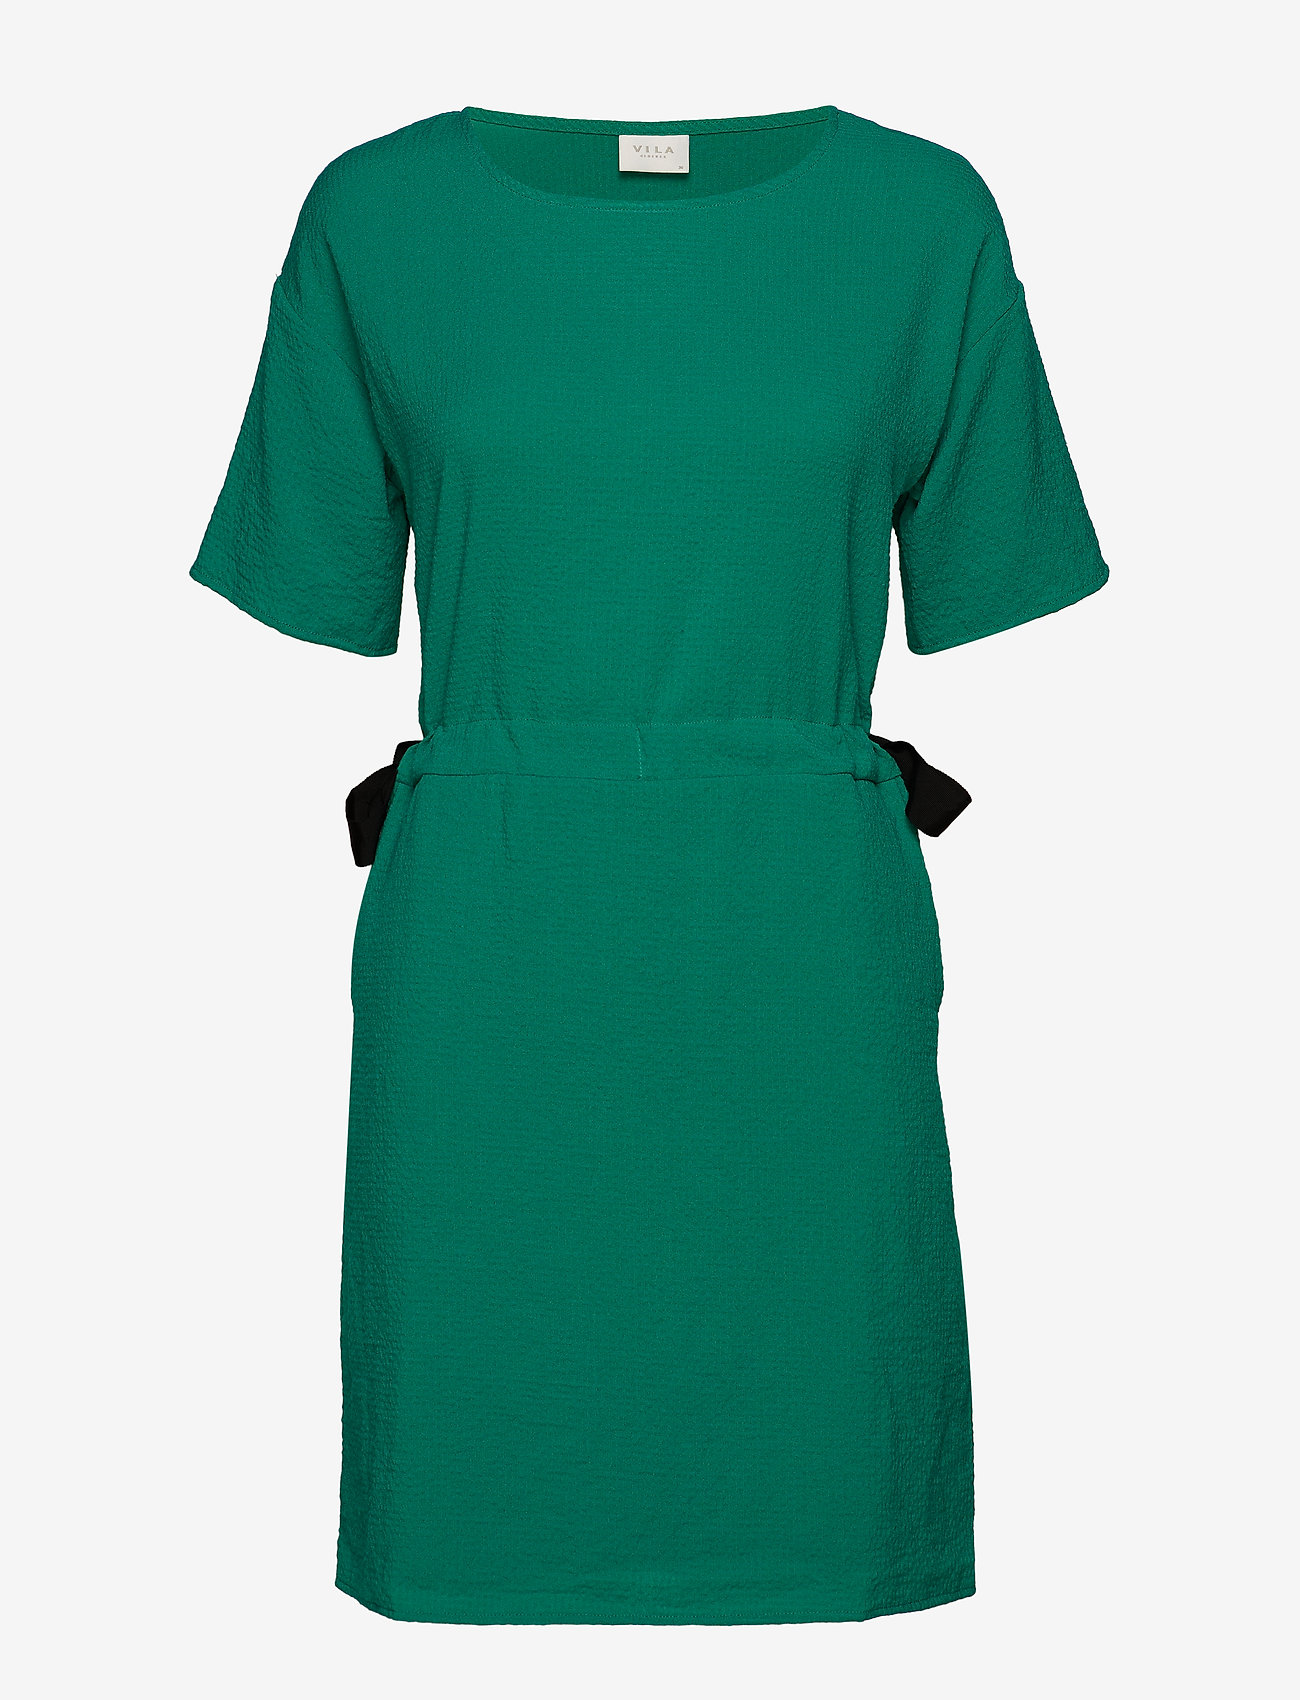 Vila - VILAMIDA 2/4 DRESS - short dresses - pepper green - 0